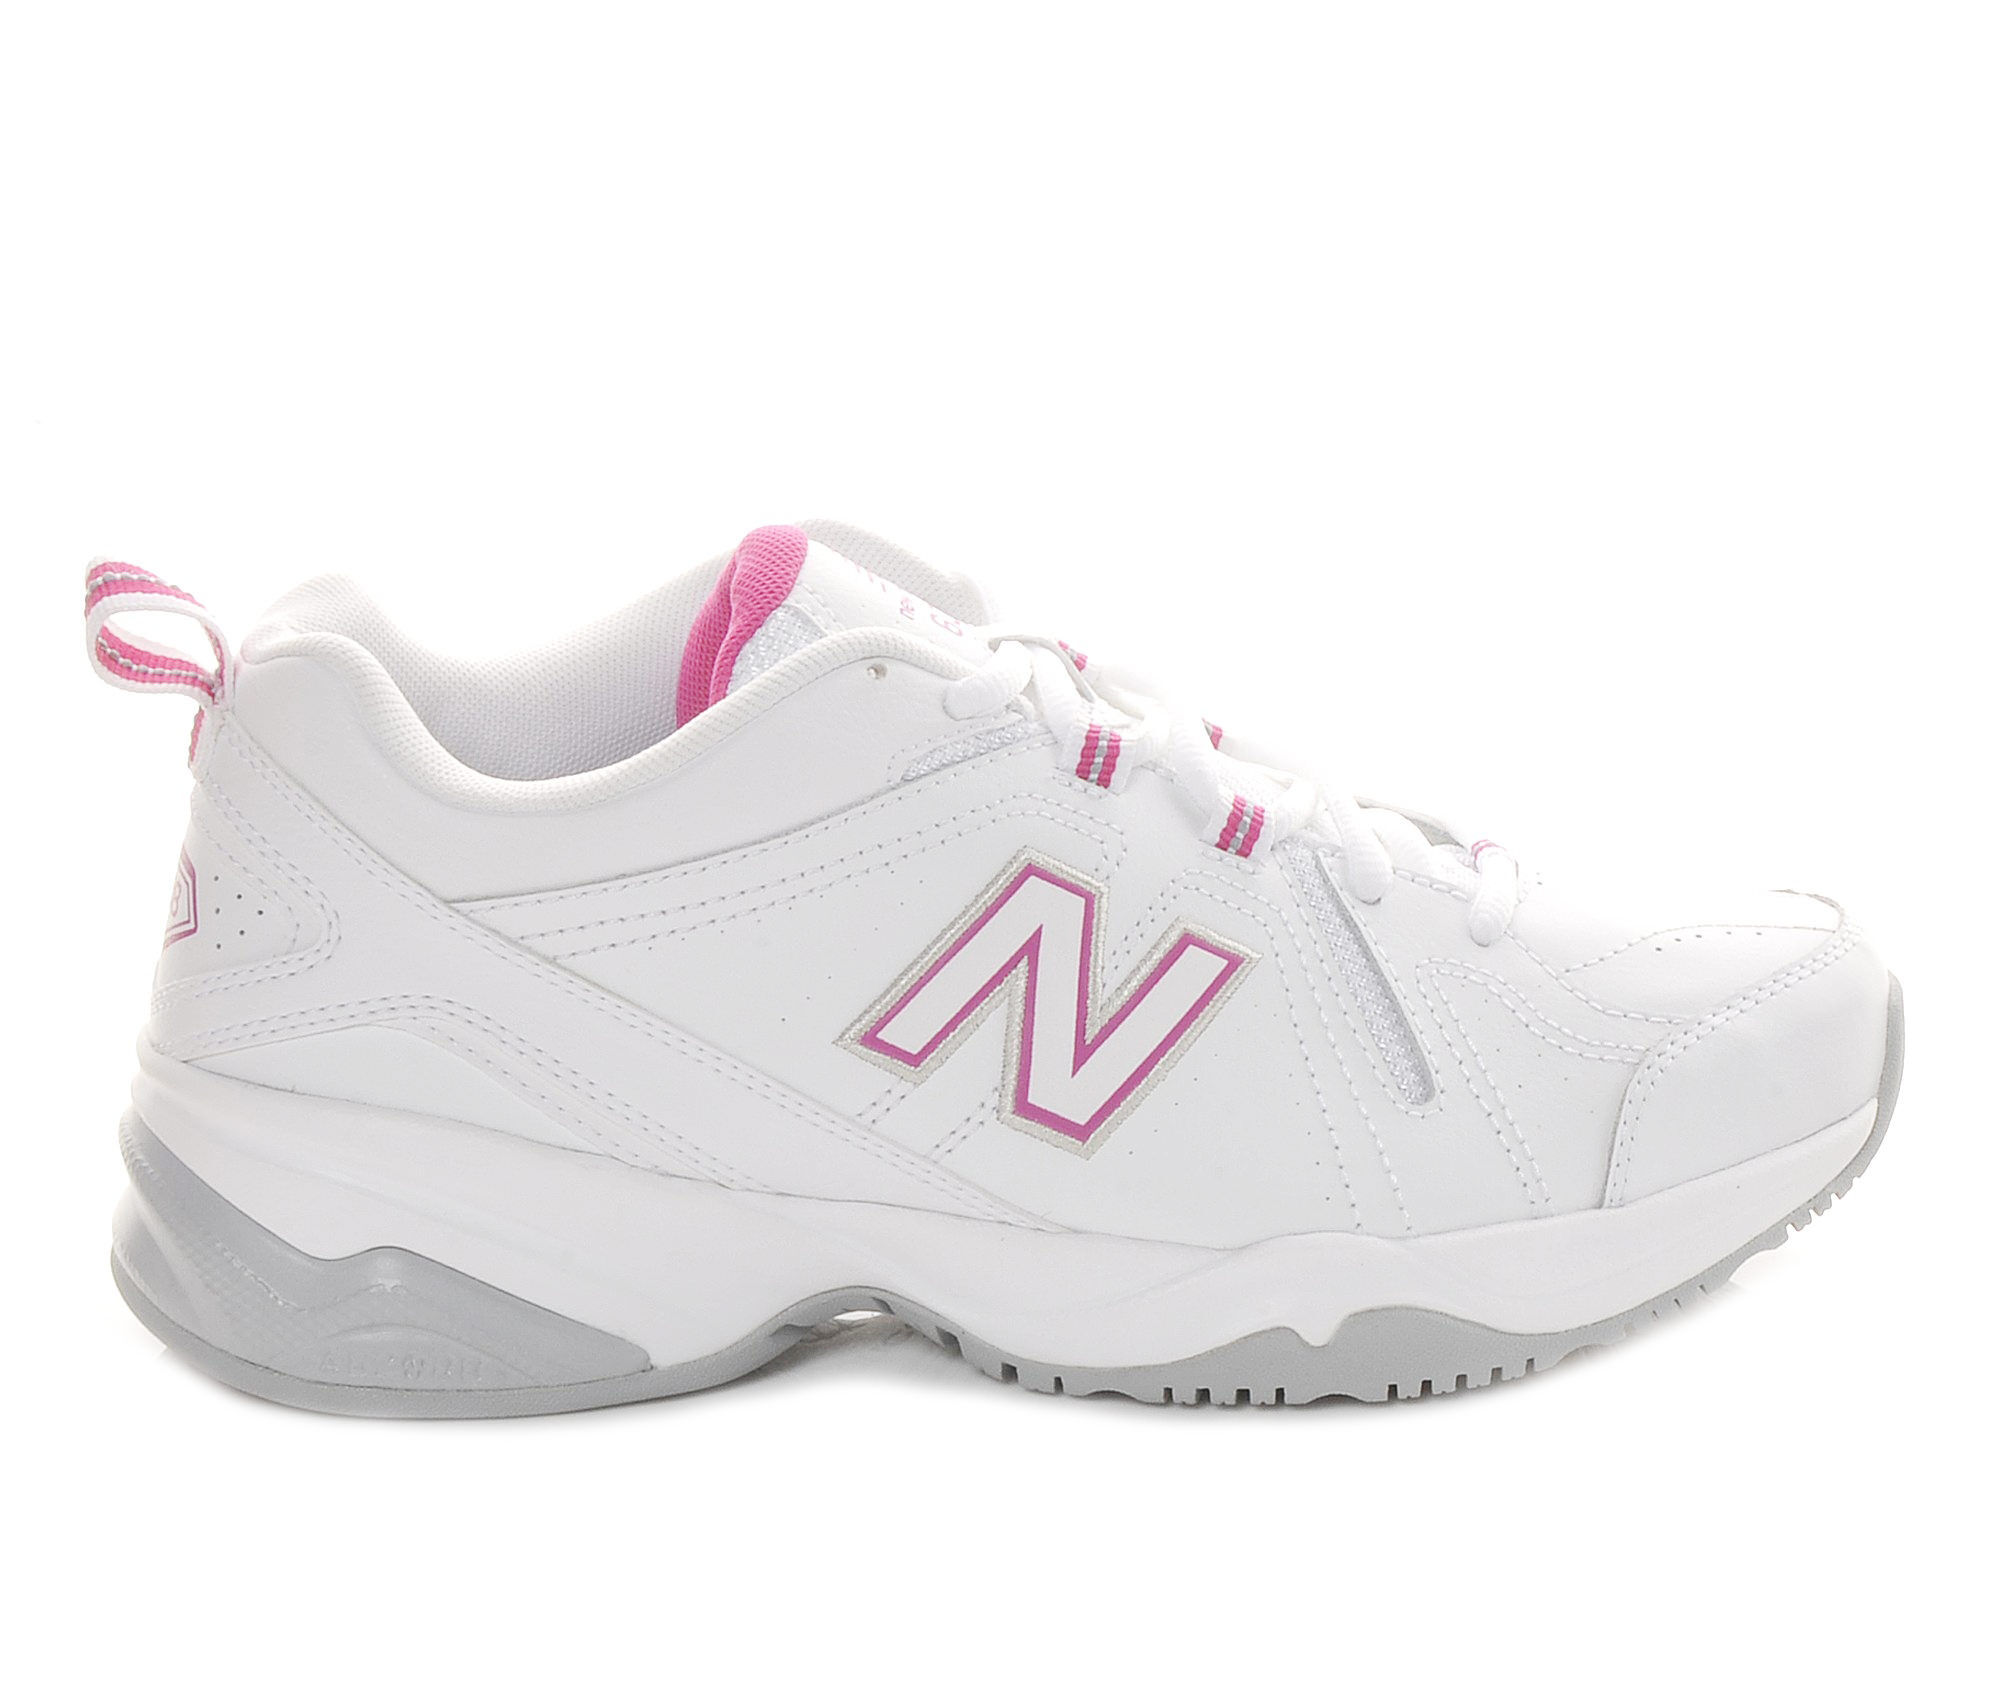 Women's Athletic Shoes/new balance grey pink wx608v4 cm2q28t4